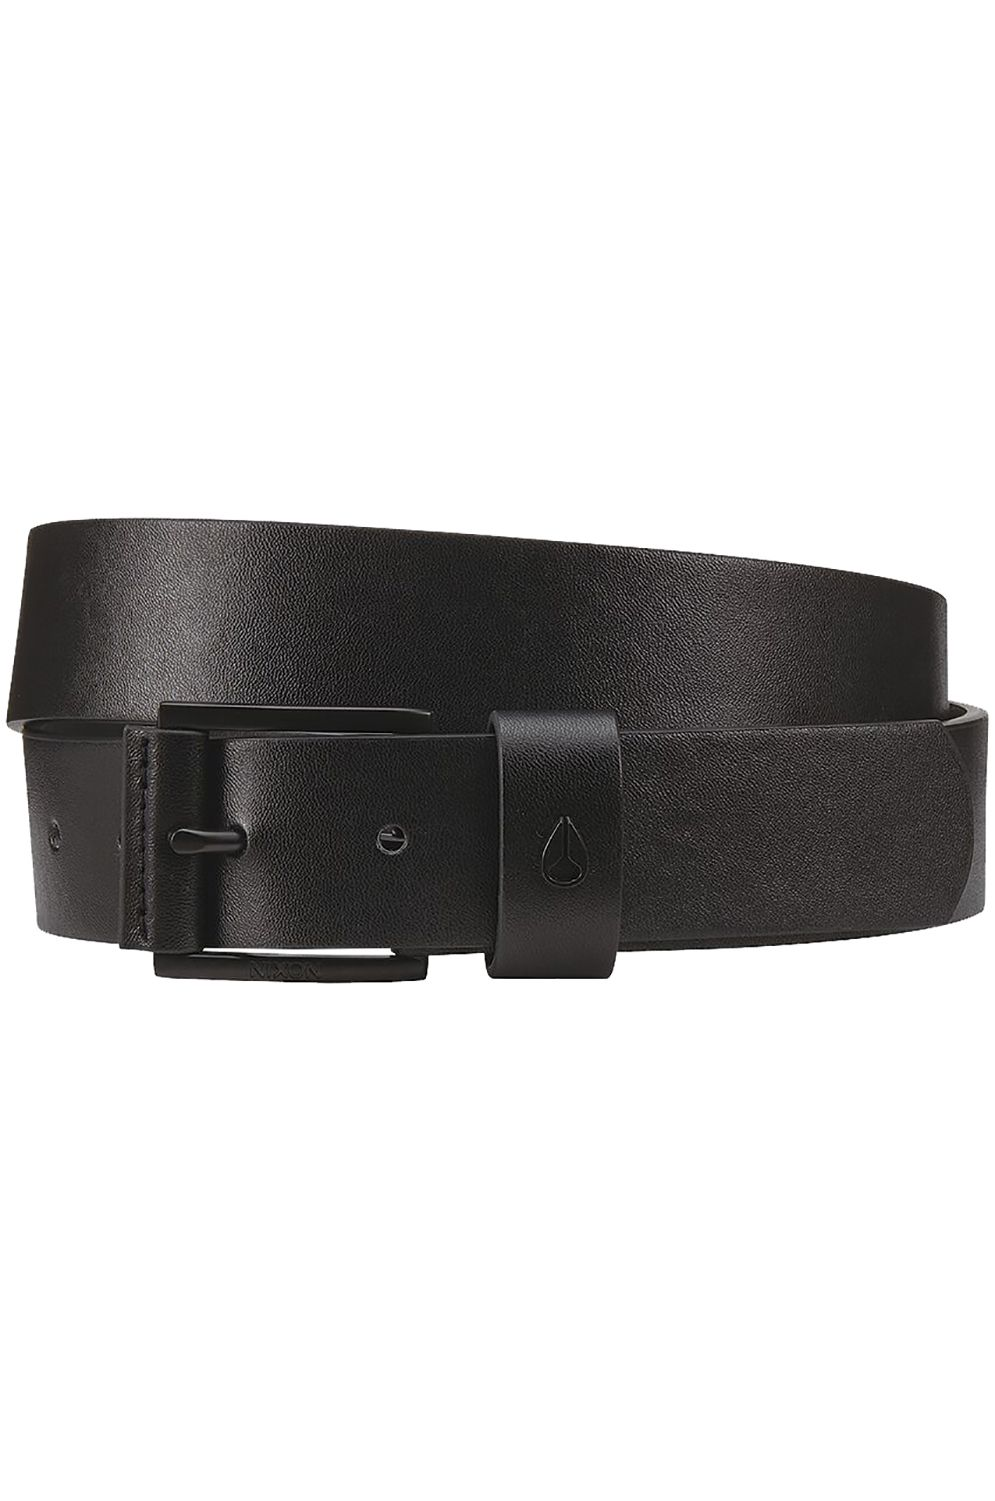 Nixon Belt AMERICANA VEGAN All Black